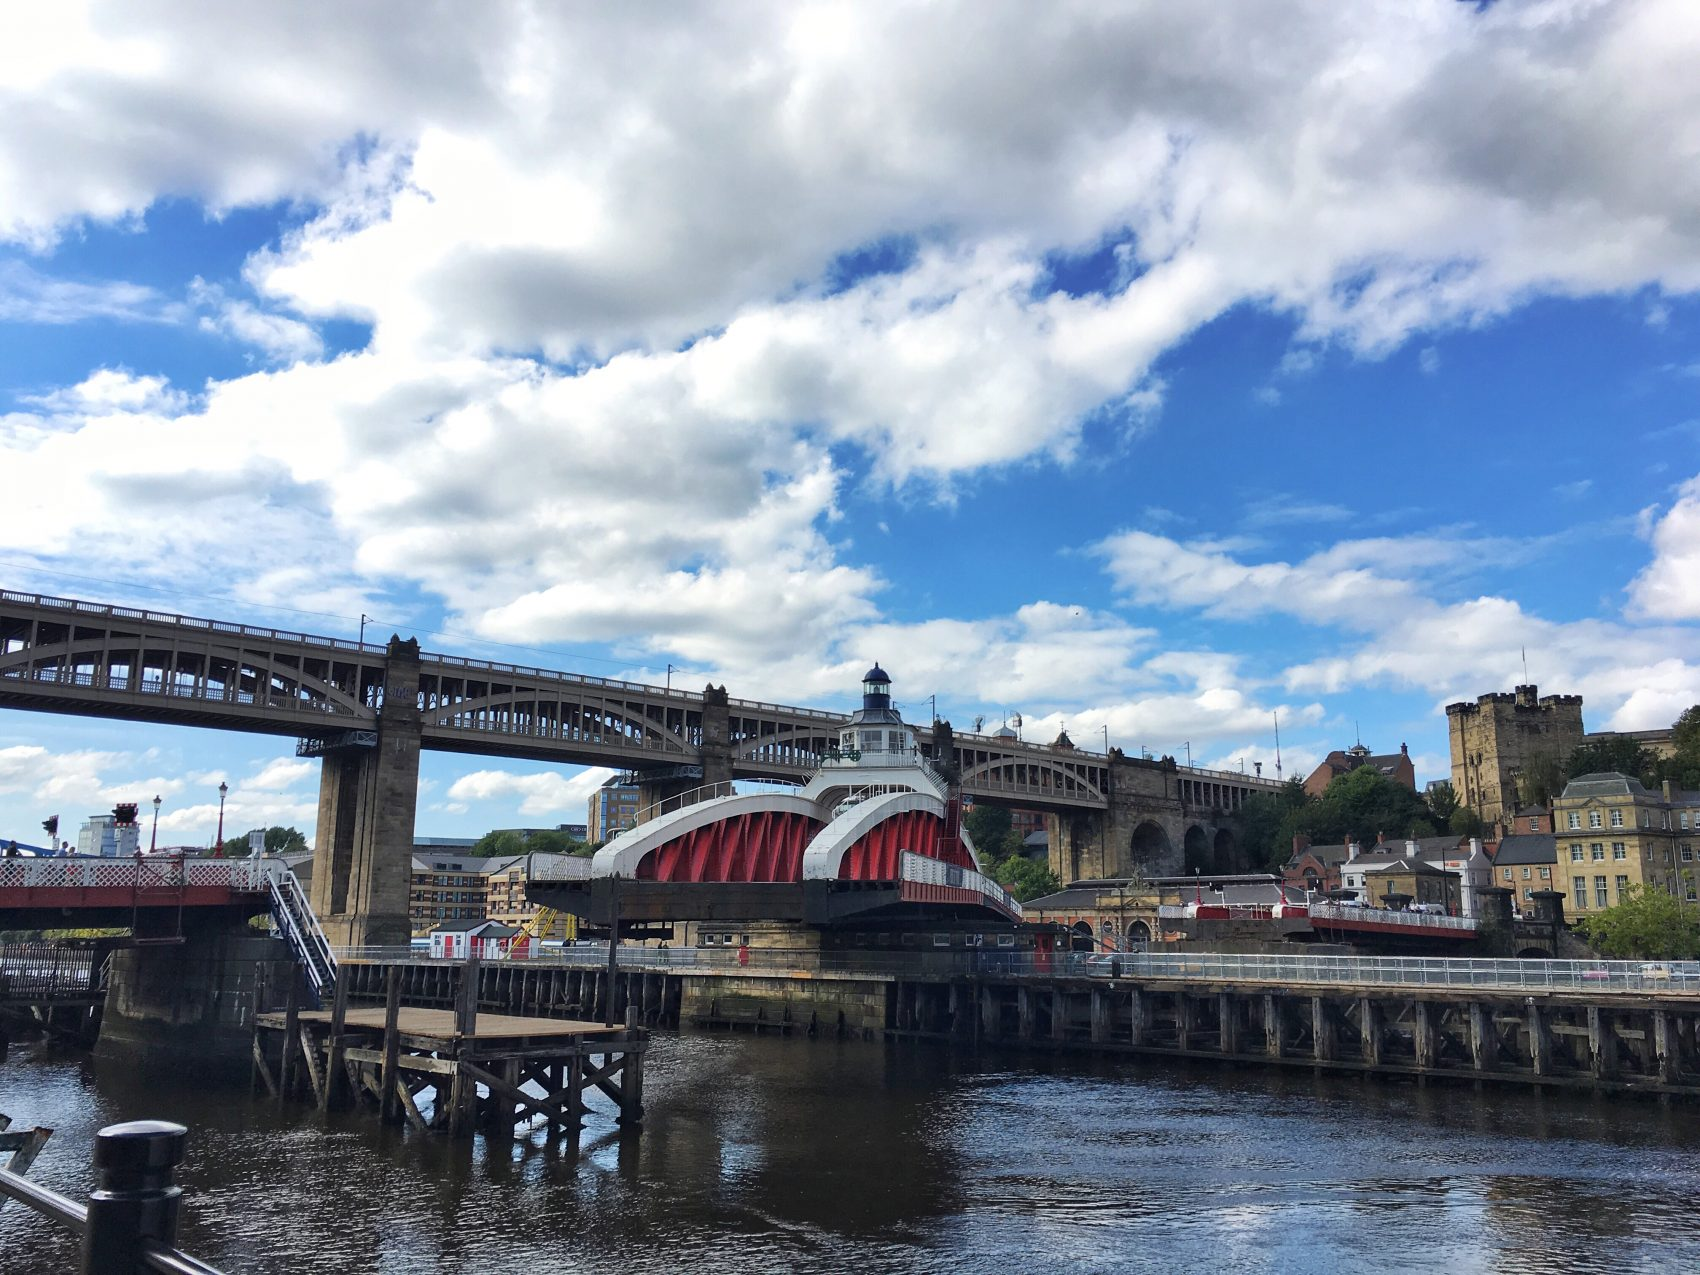 Swing Bridge under operation, Newcastle-Upon-Tyne